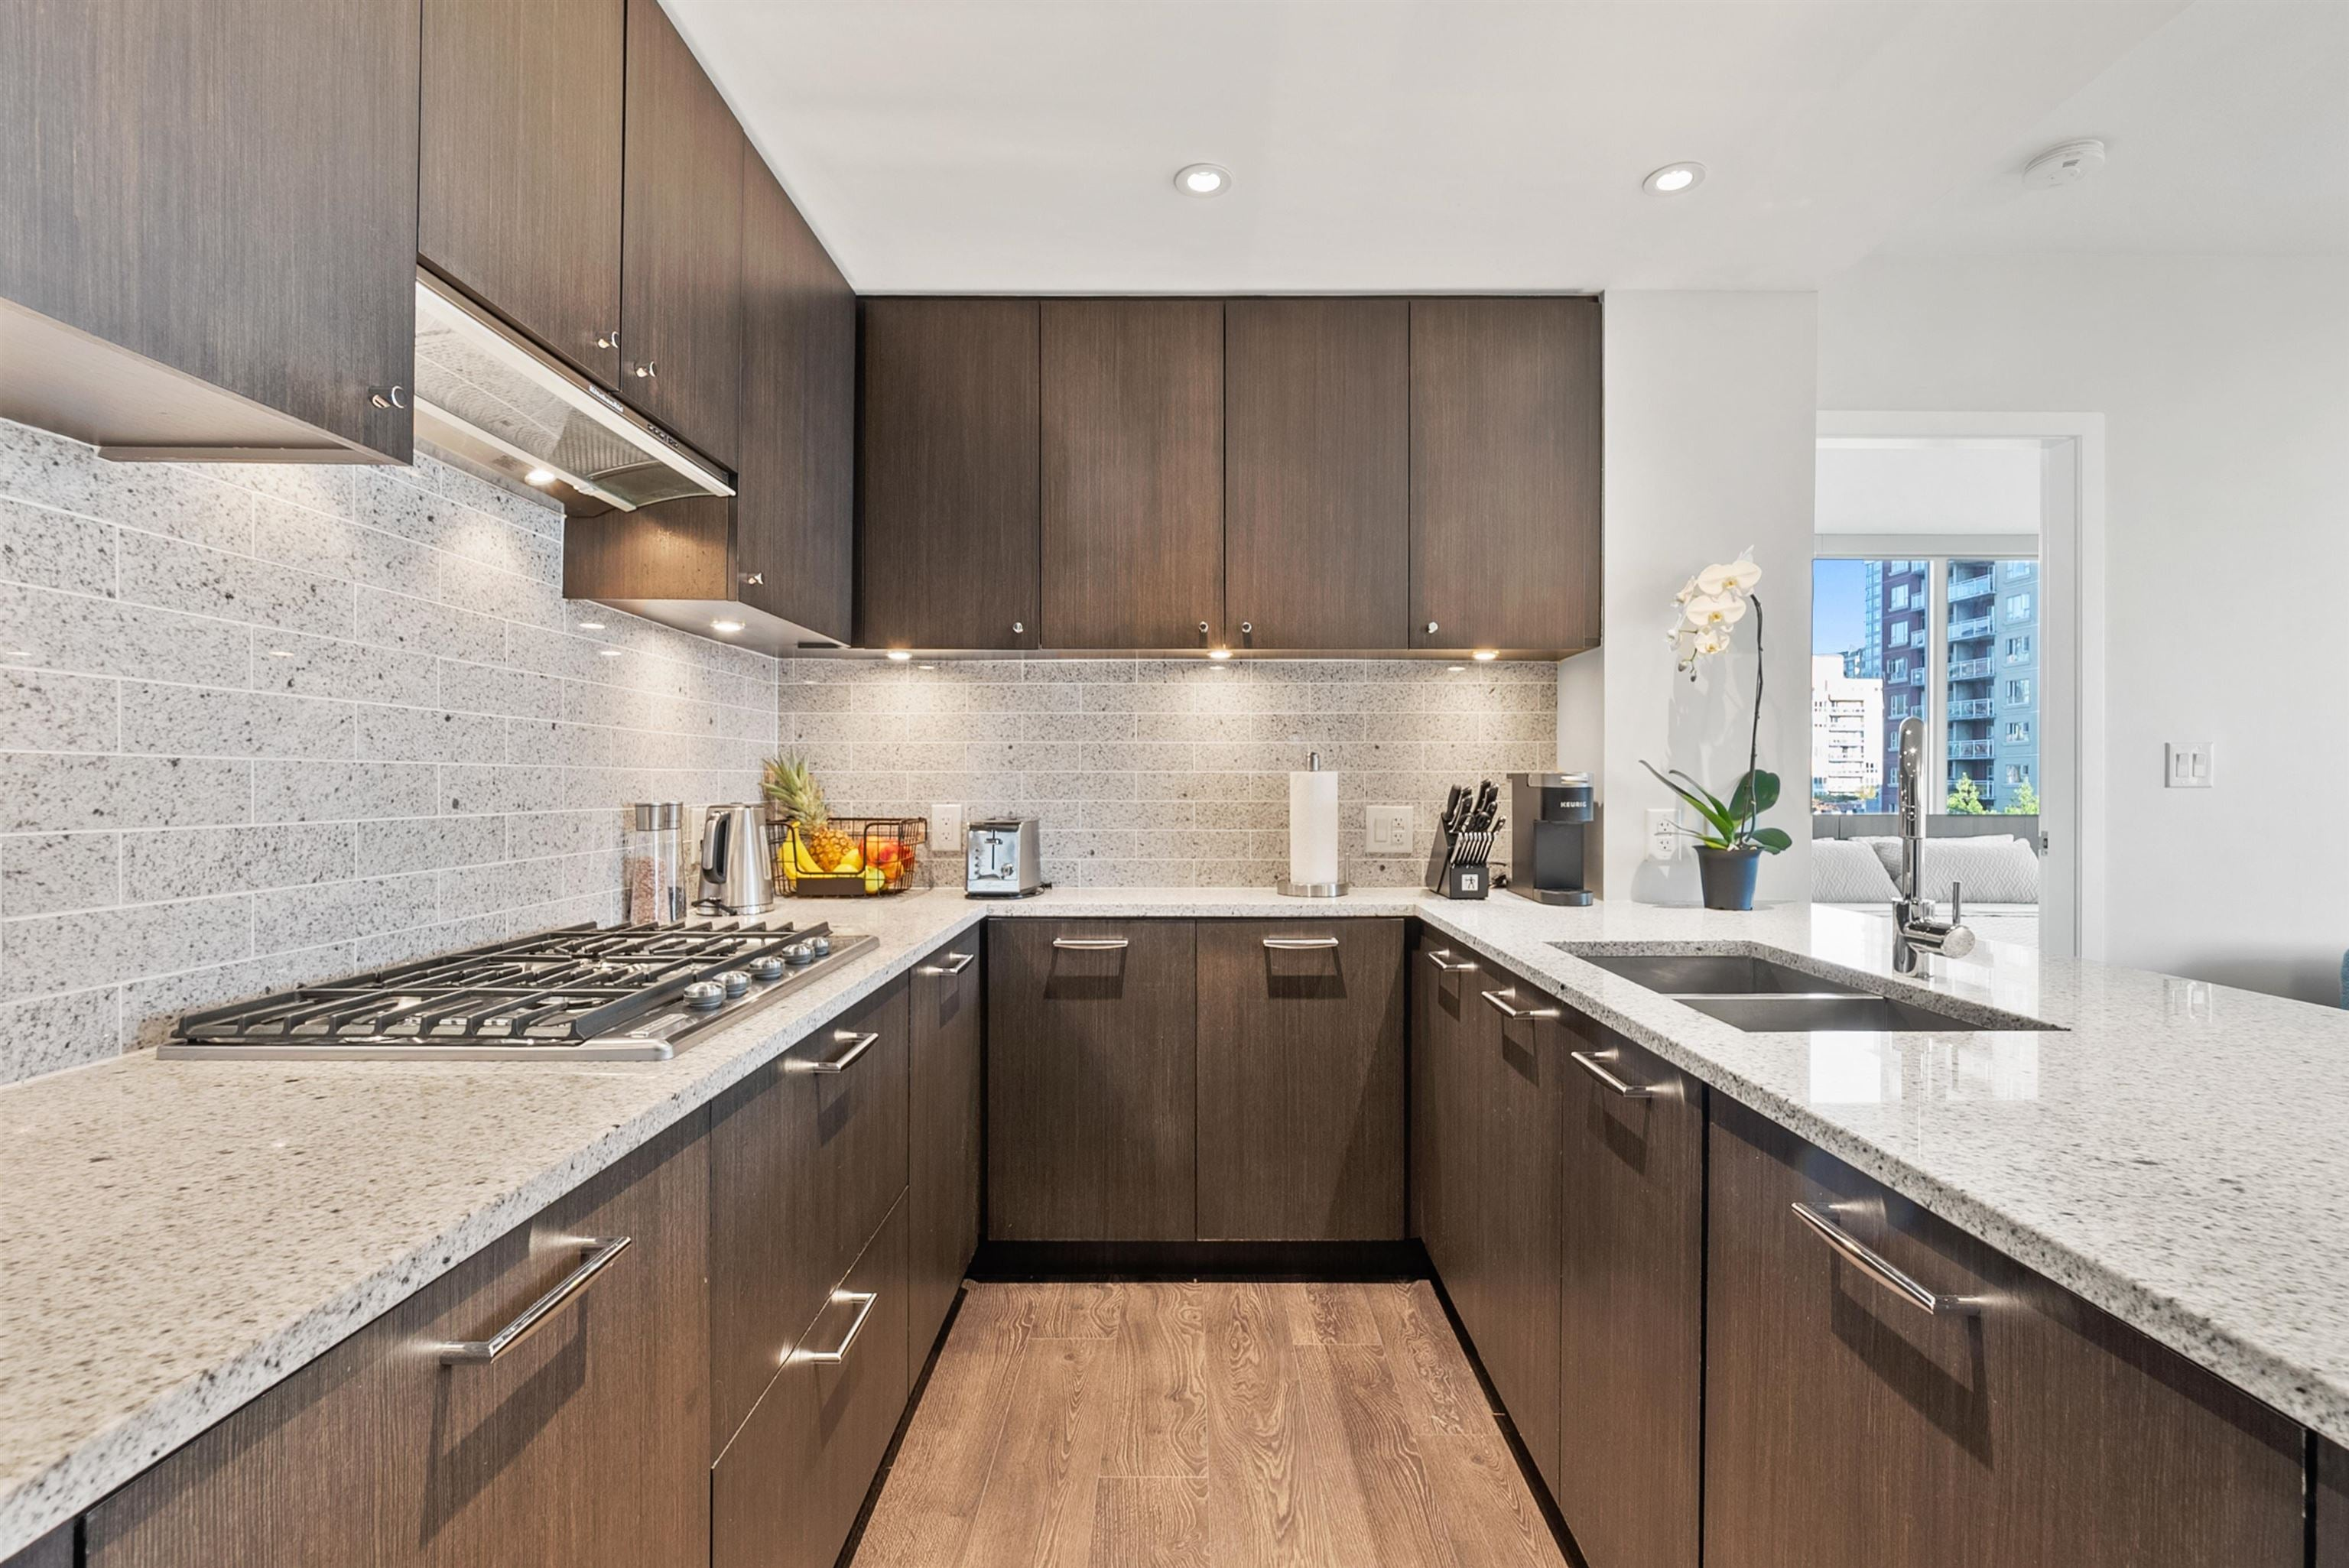 503 150 W 15TH STREET - Central Lonsdale Apartment/Condo for sale, 2 Bedrooms (R2624732) - #10